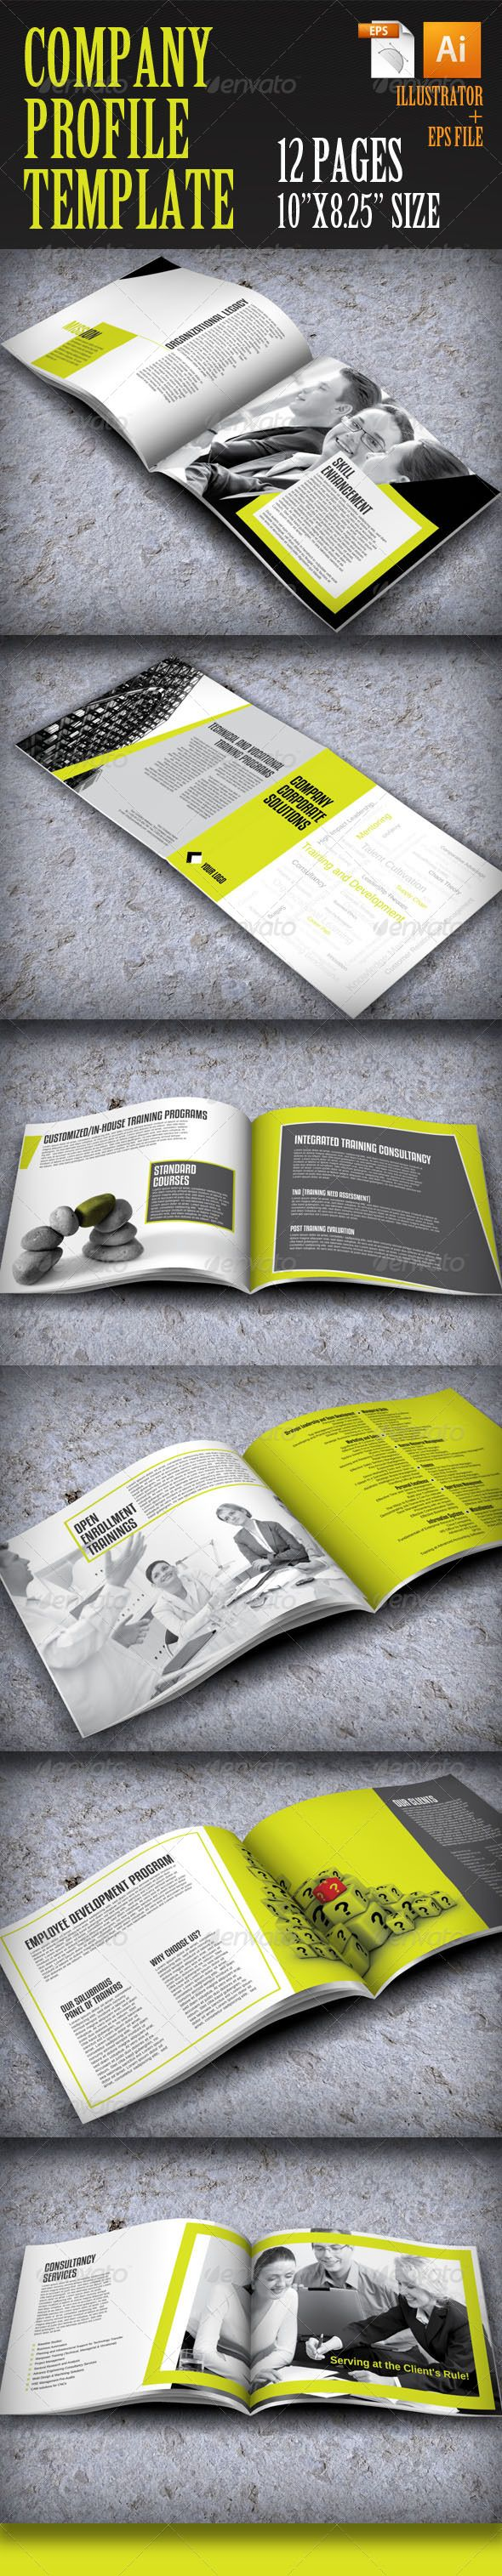 company profile brochure template - 31 best company profile templates images on pinterest